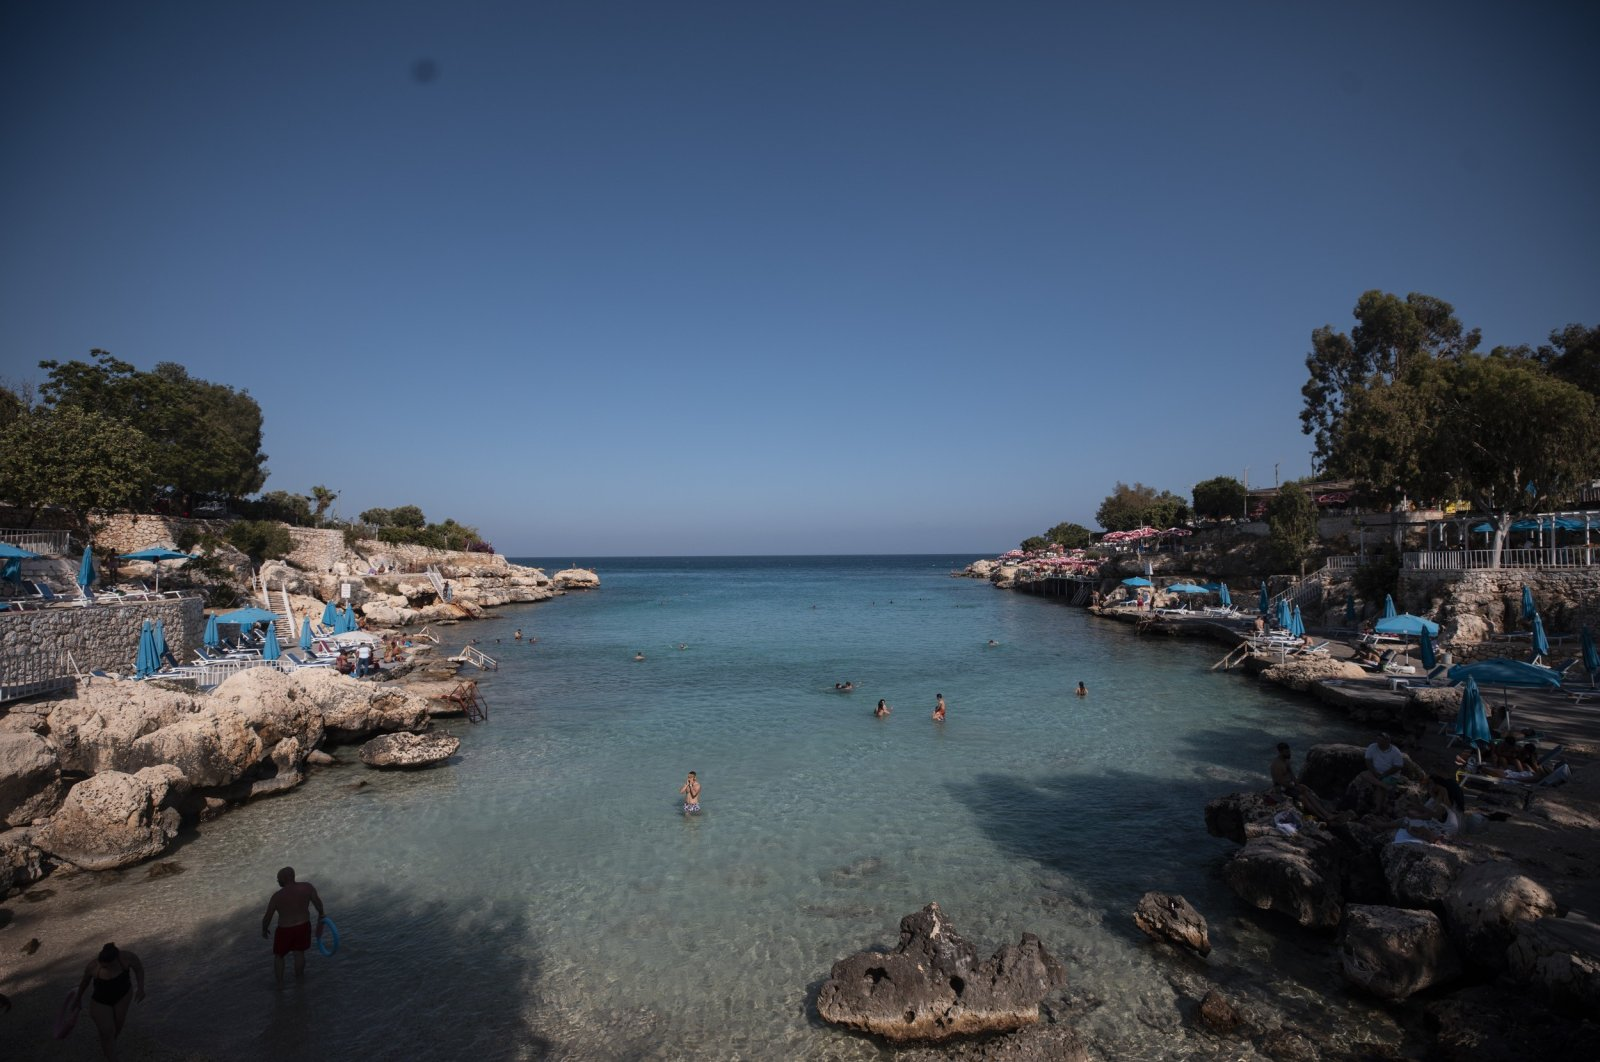 People enjoy a day in the sun at a beach in Mersin province, Turkey, June 21, 2020. (IHA Photo)